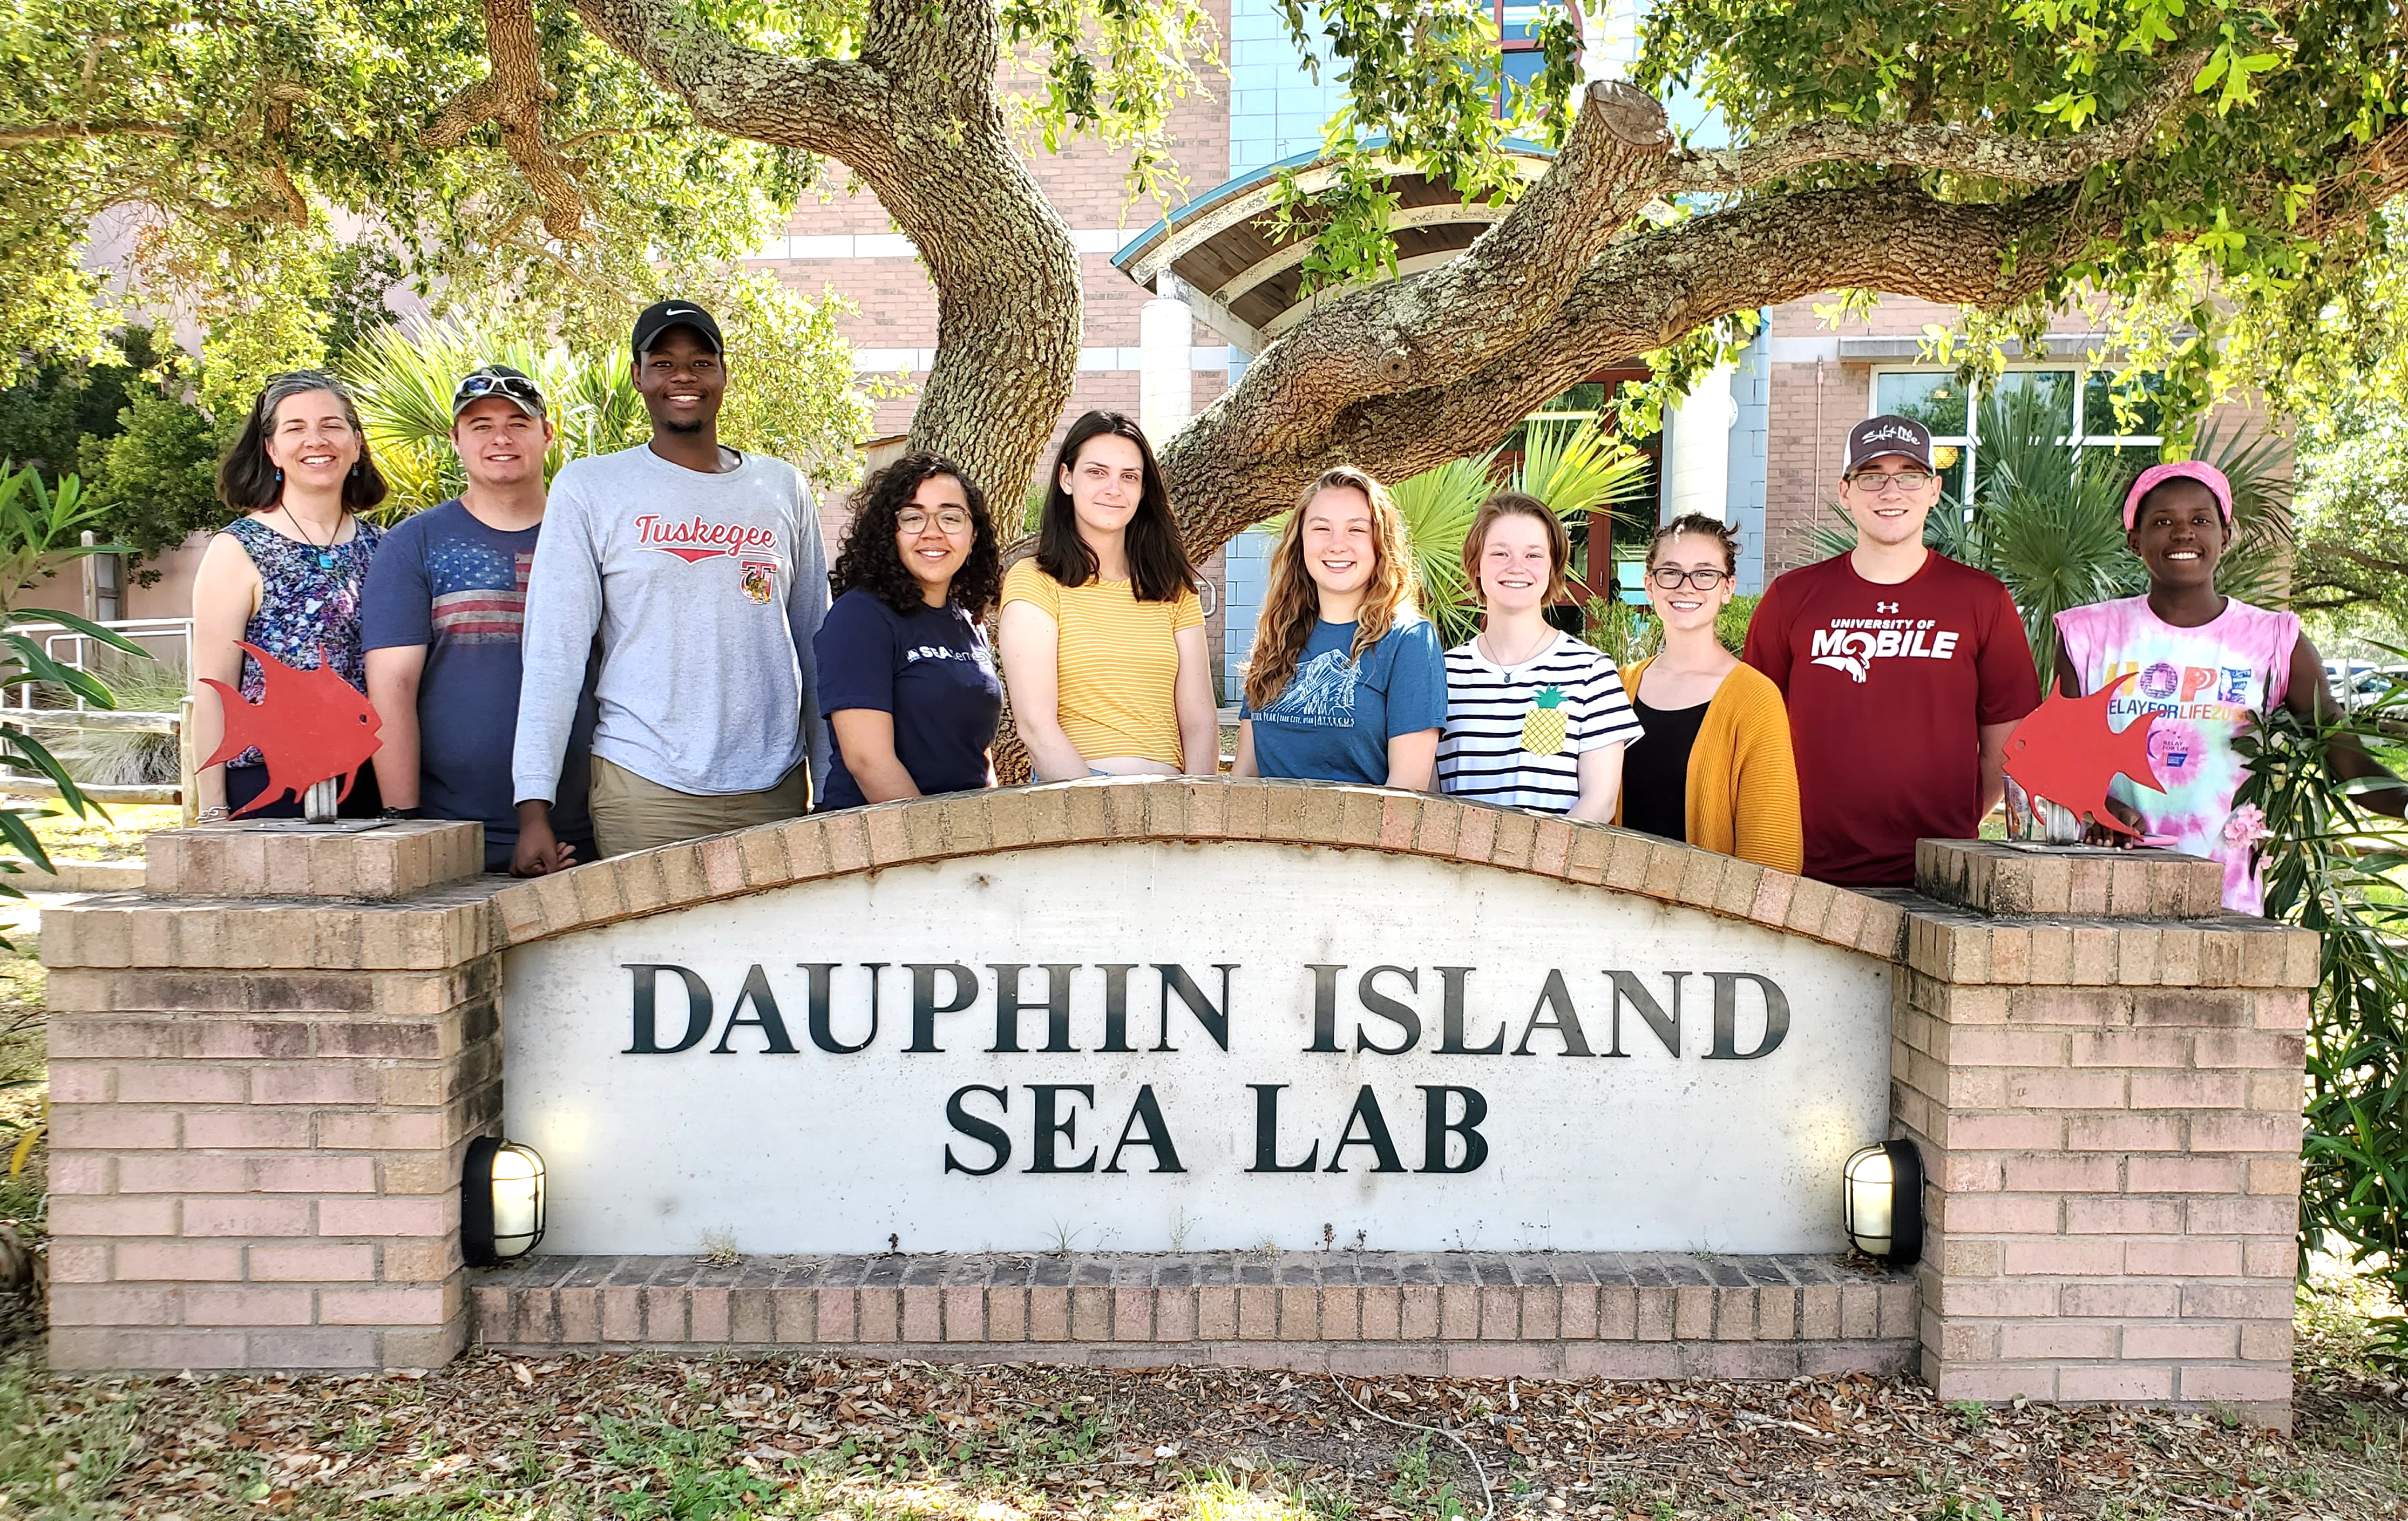 TU student Terrance Mitchell stand with Summer Research group in front of Dauphin Island Sea Lab sign